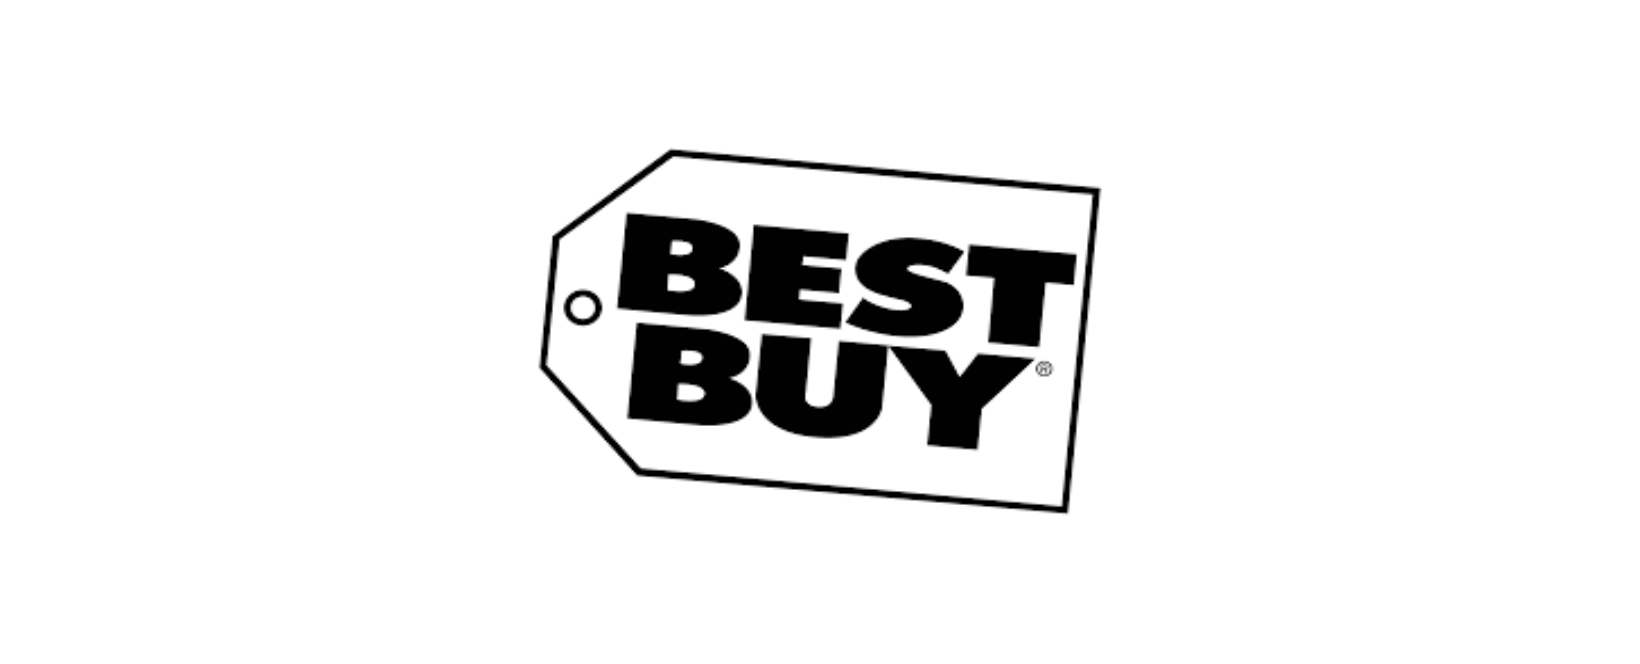 Best And First Discount Code 2021